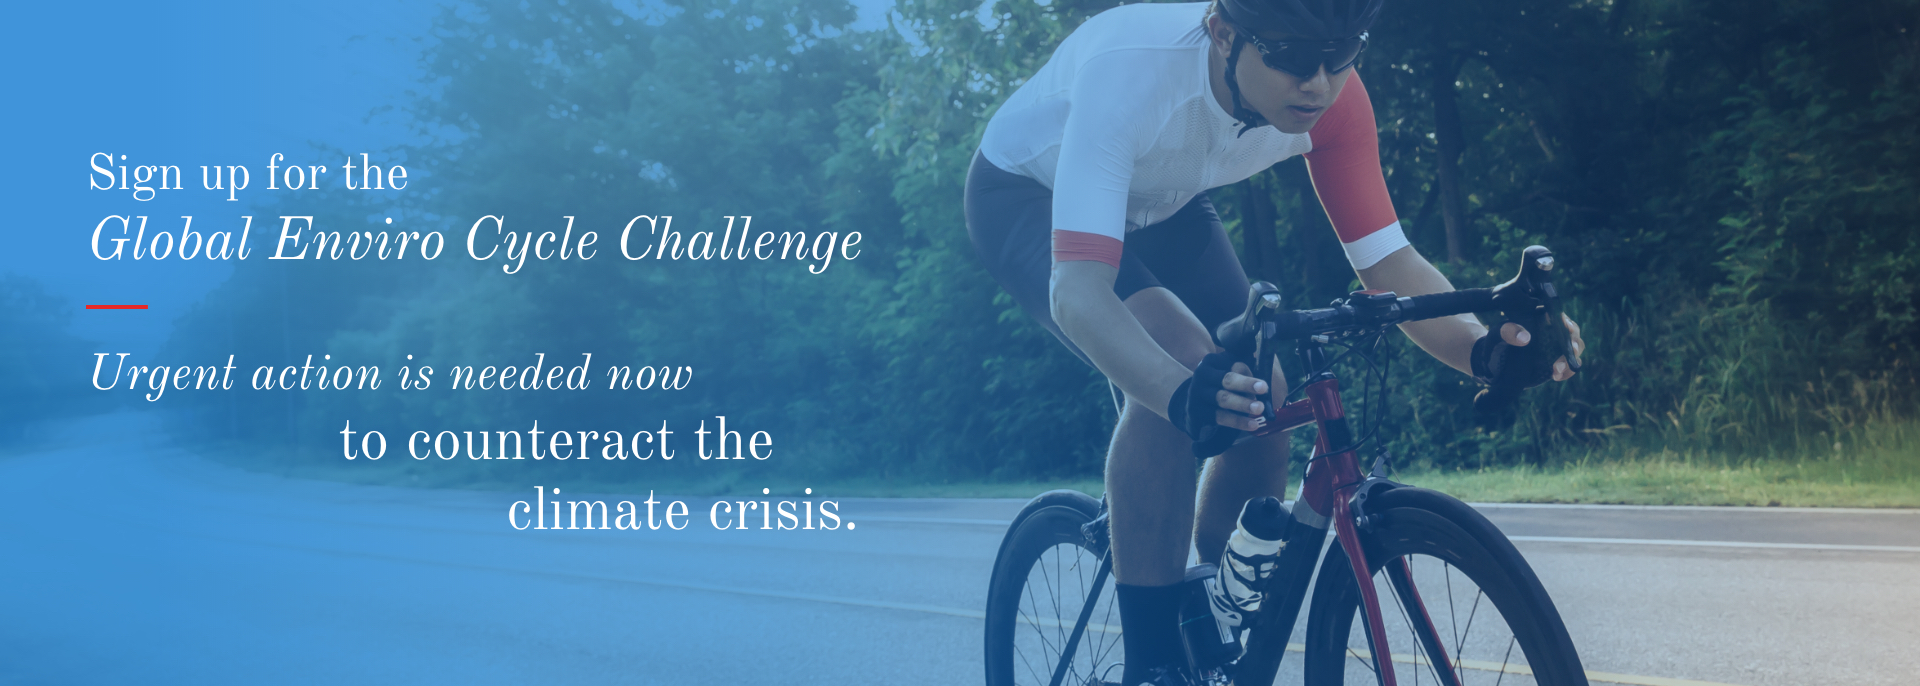 Charity Enviro Cycle Challenge to save the ocean